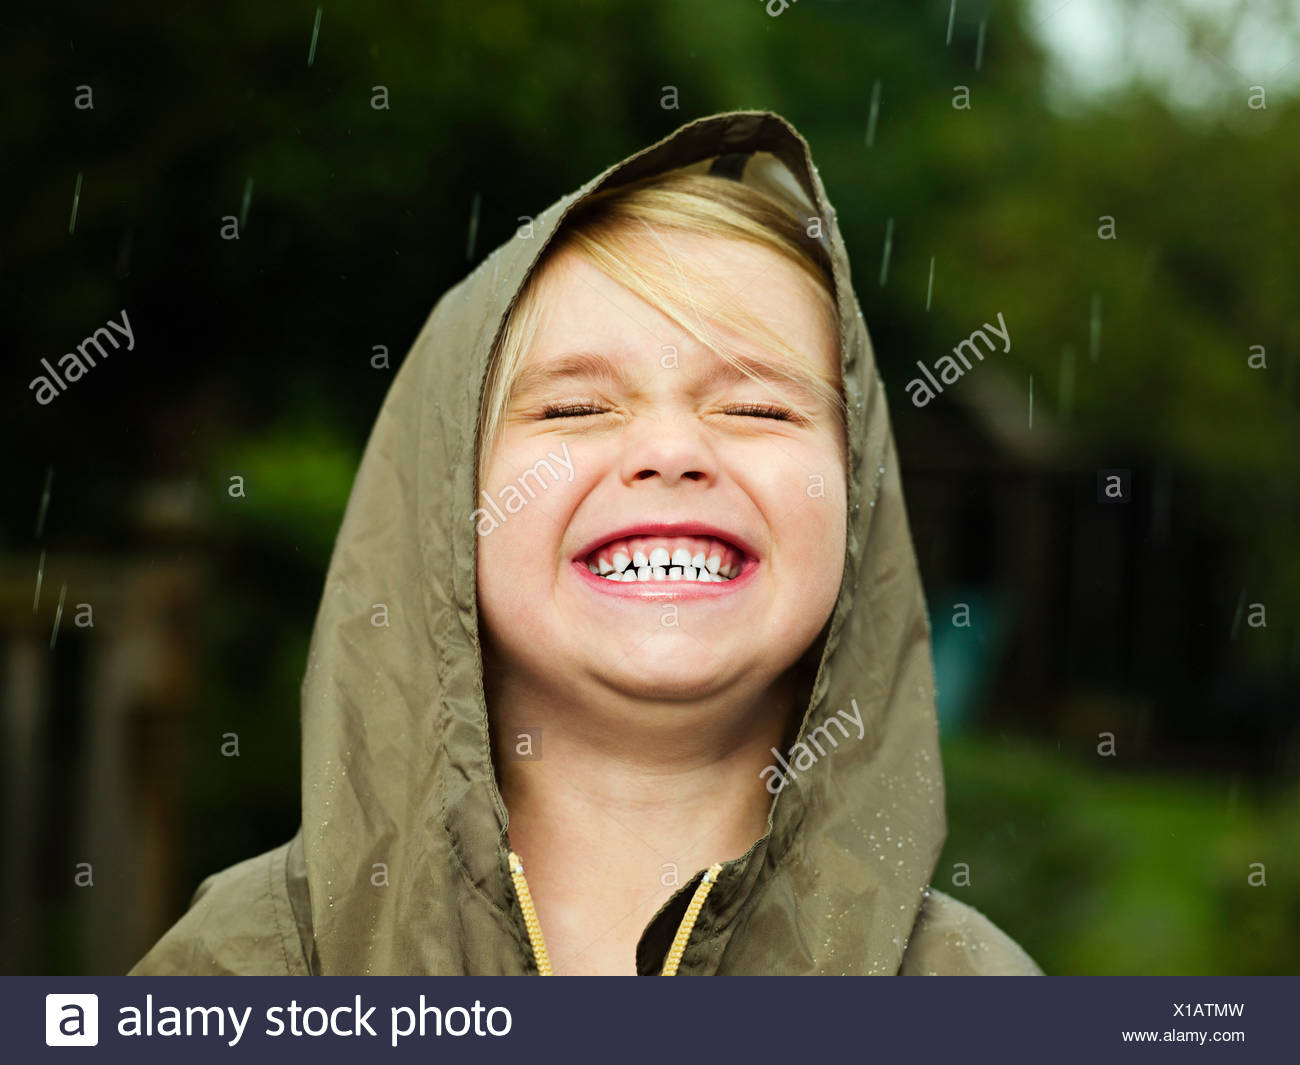 Girl smiling while it rains - Stock Image